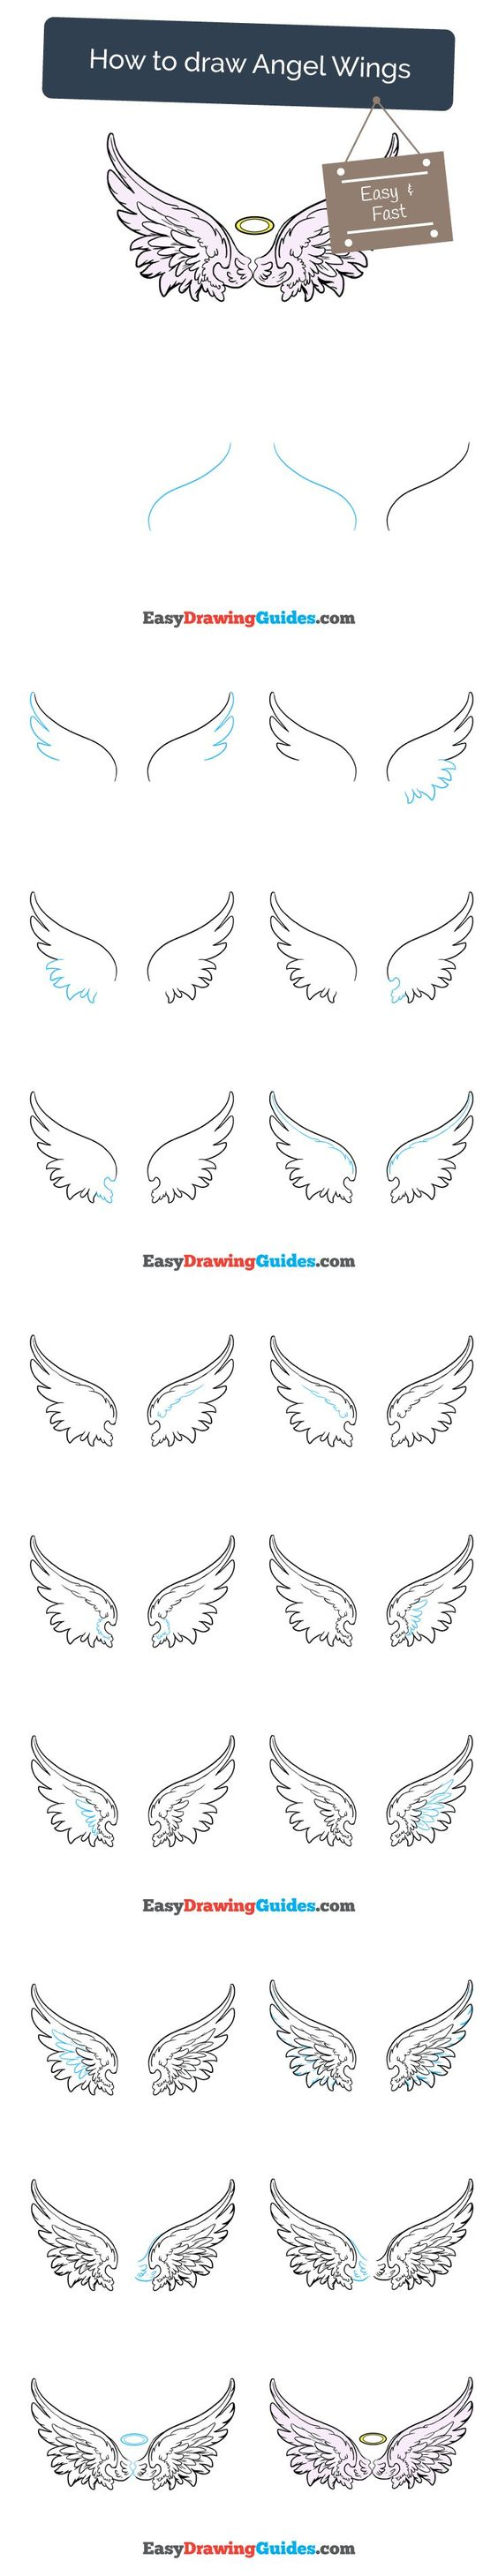 Learn How to Draw Angel Wings: Easy Step-by-Step Drawing ...